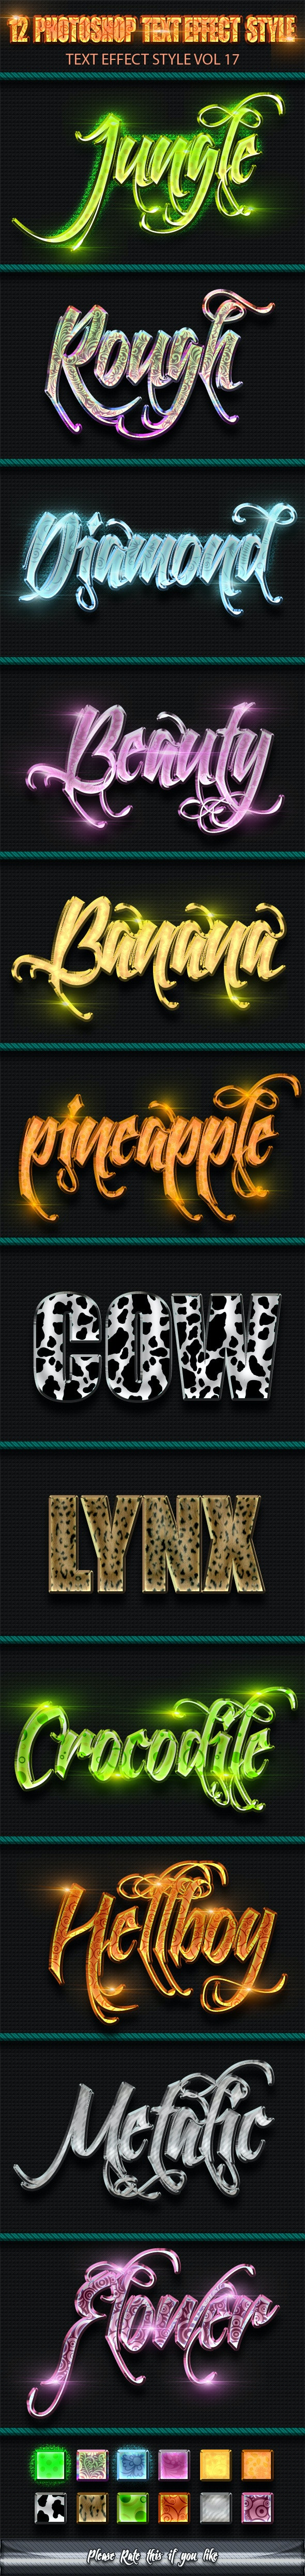 12 Photoshop Text Effect Styles Vol 17 - Text Effects Styles